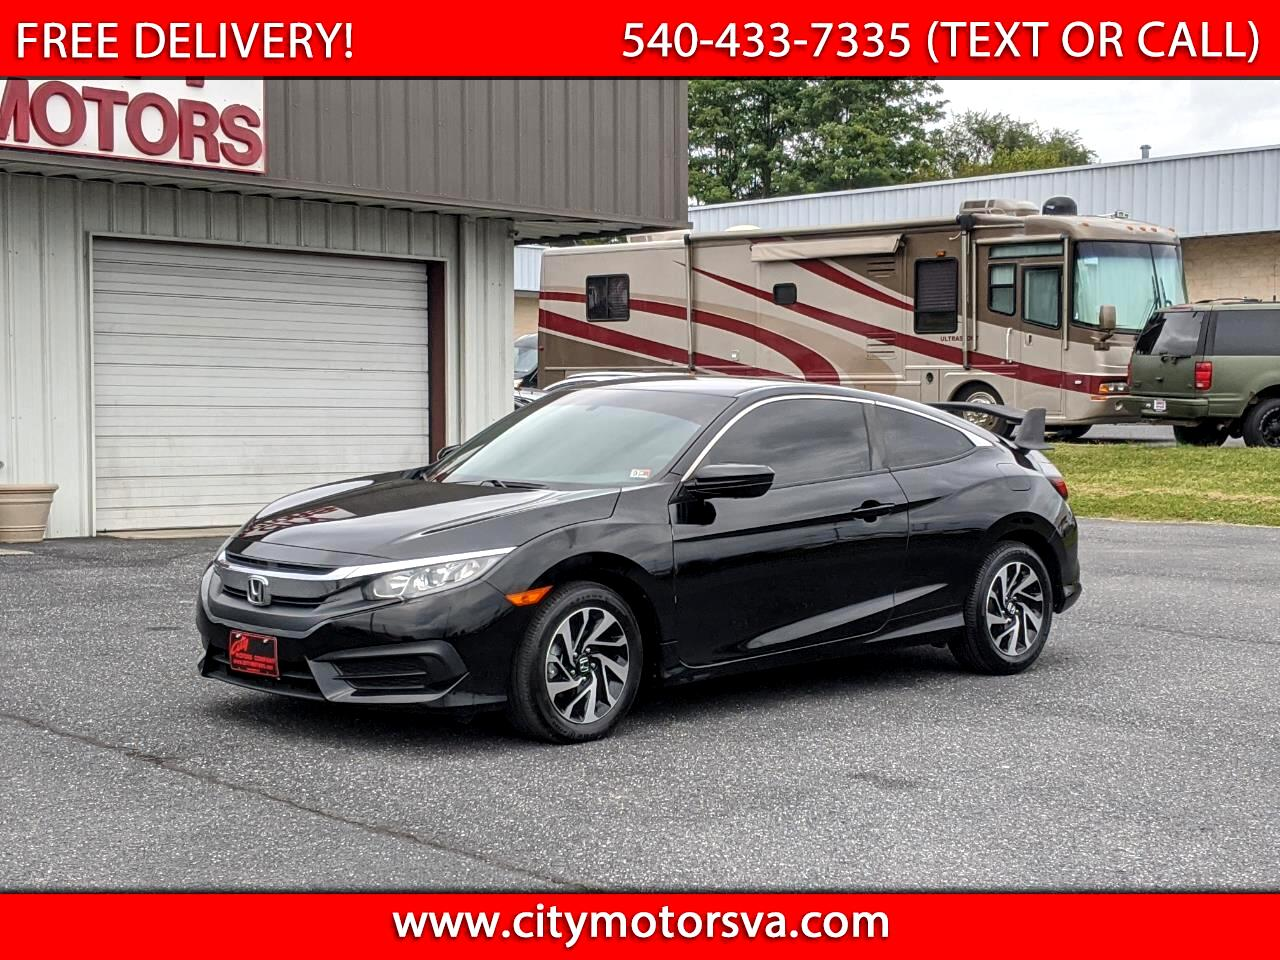 Honda Civic Coupe LX Manual 2018